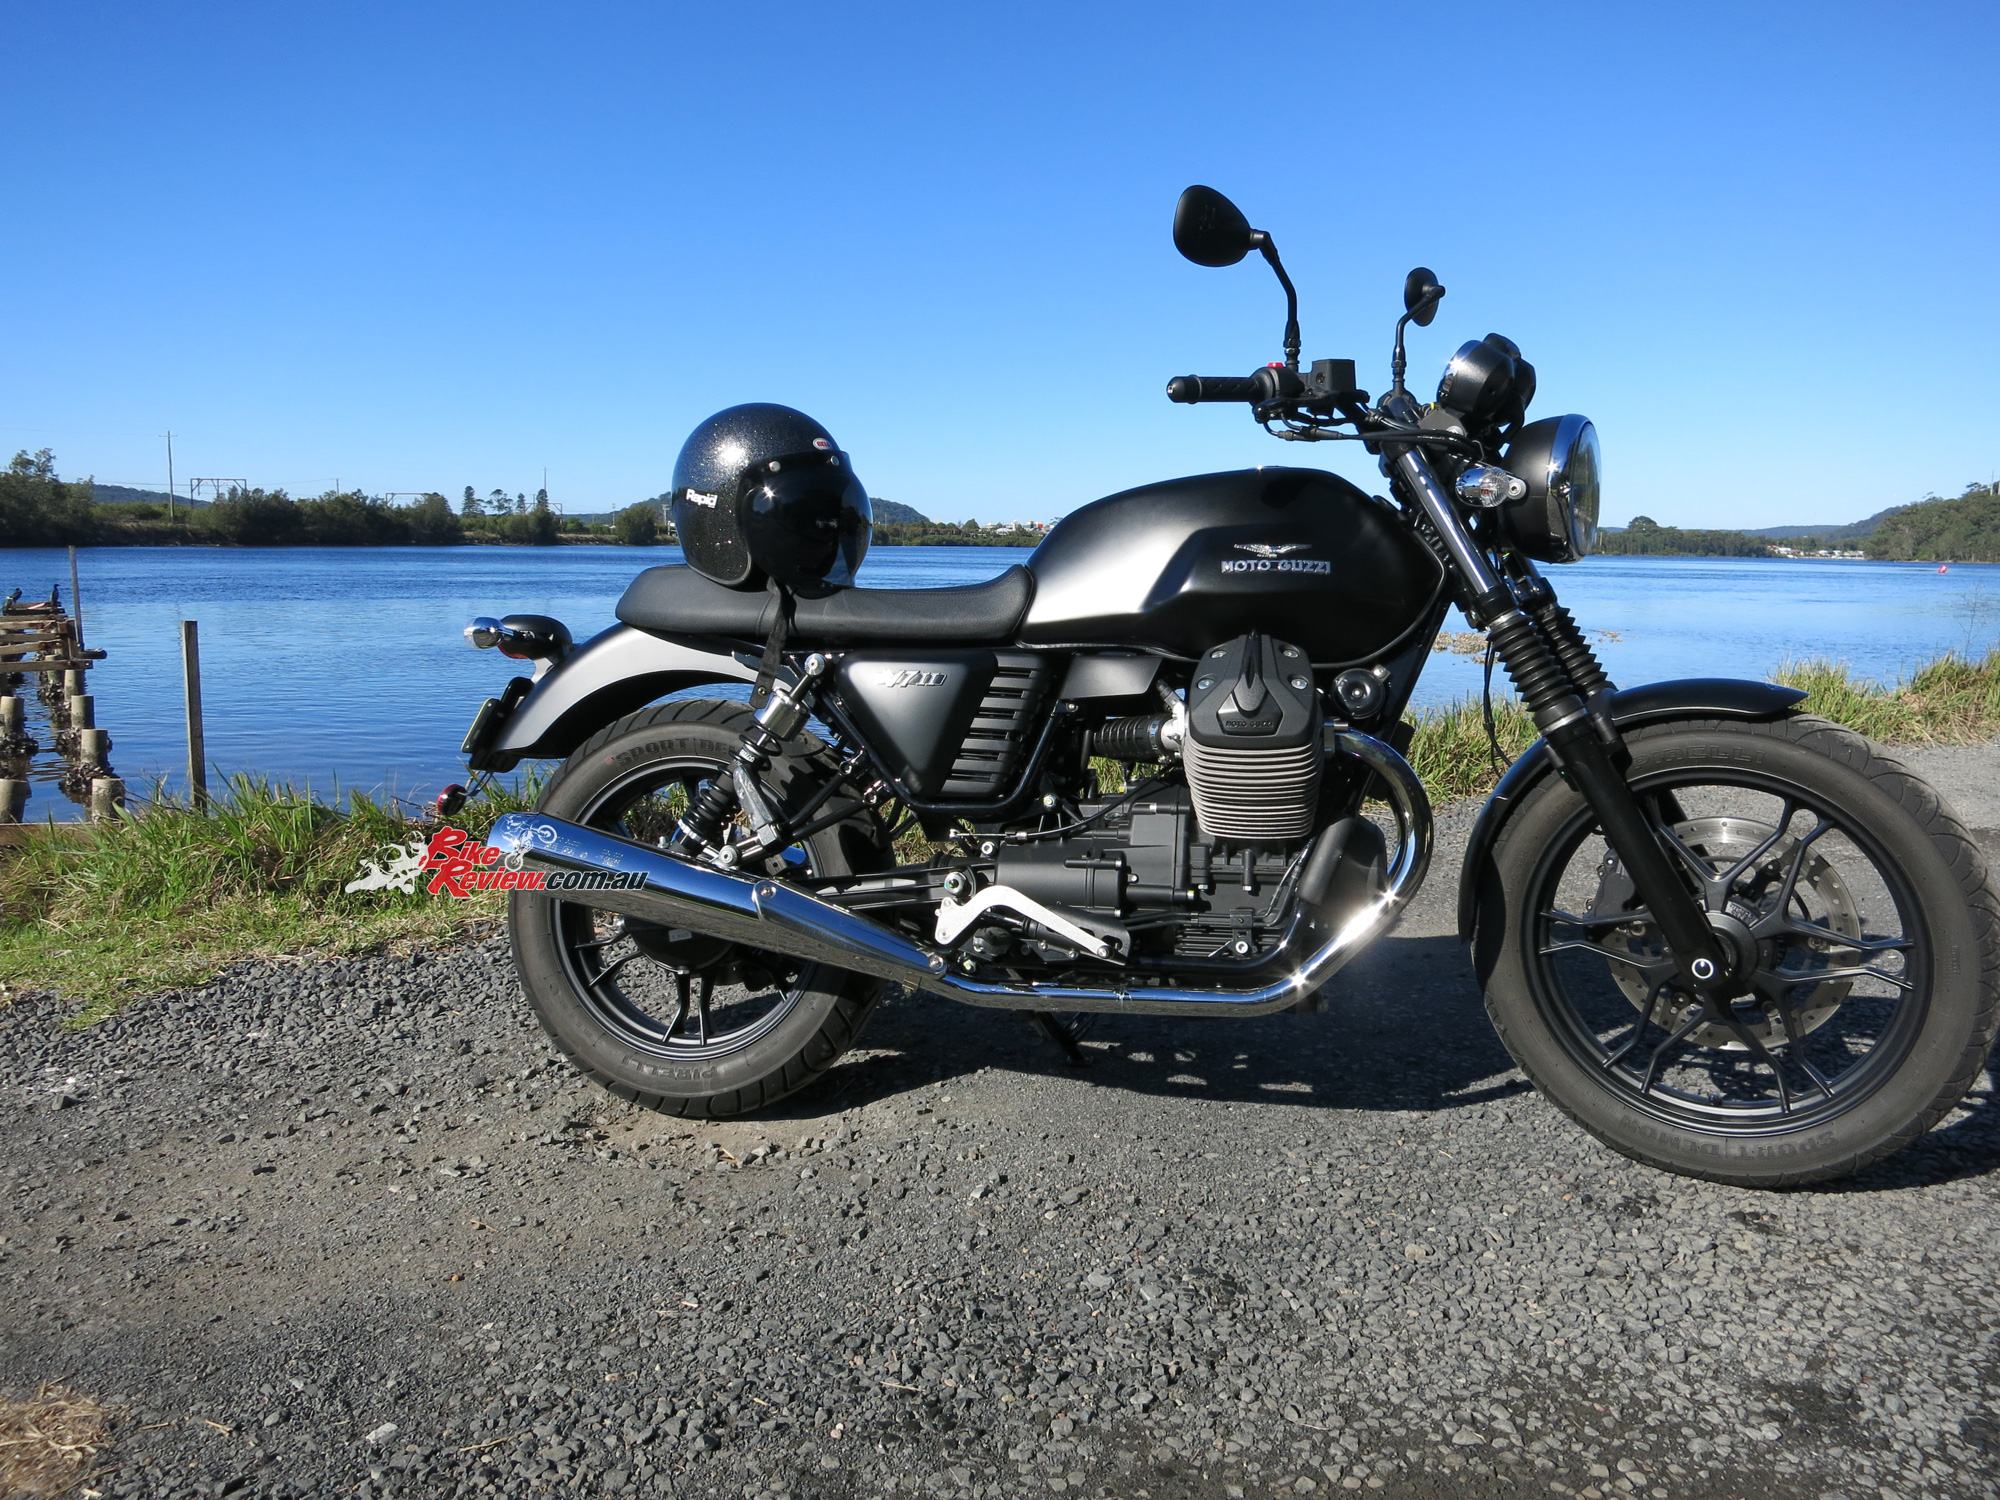 review 2015 moto guzzi v7 ii stone bike review. Black Bedroom Furniture Sets. Home Design Ideas